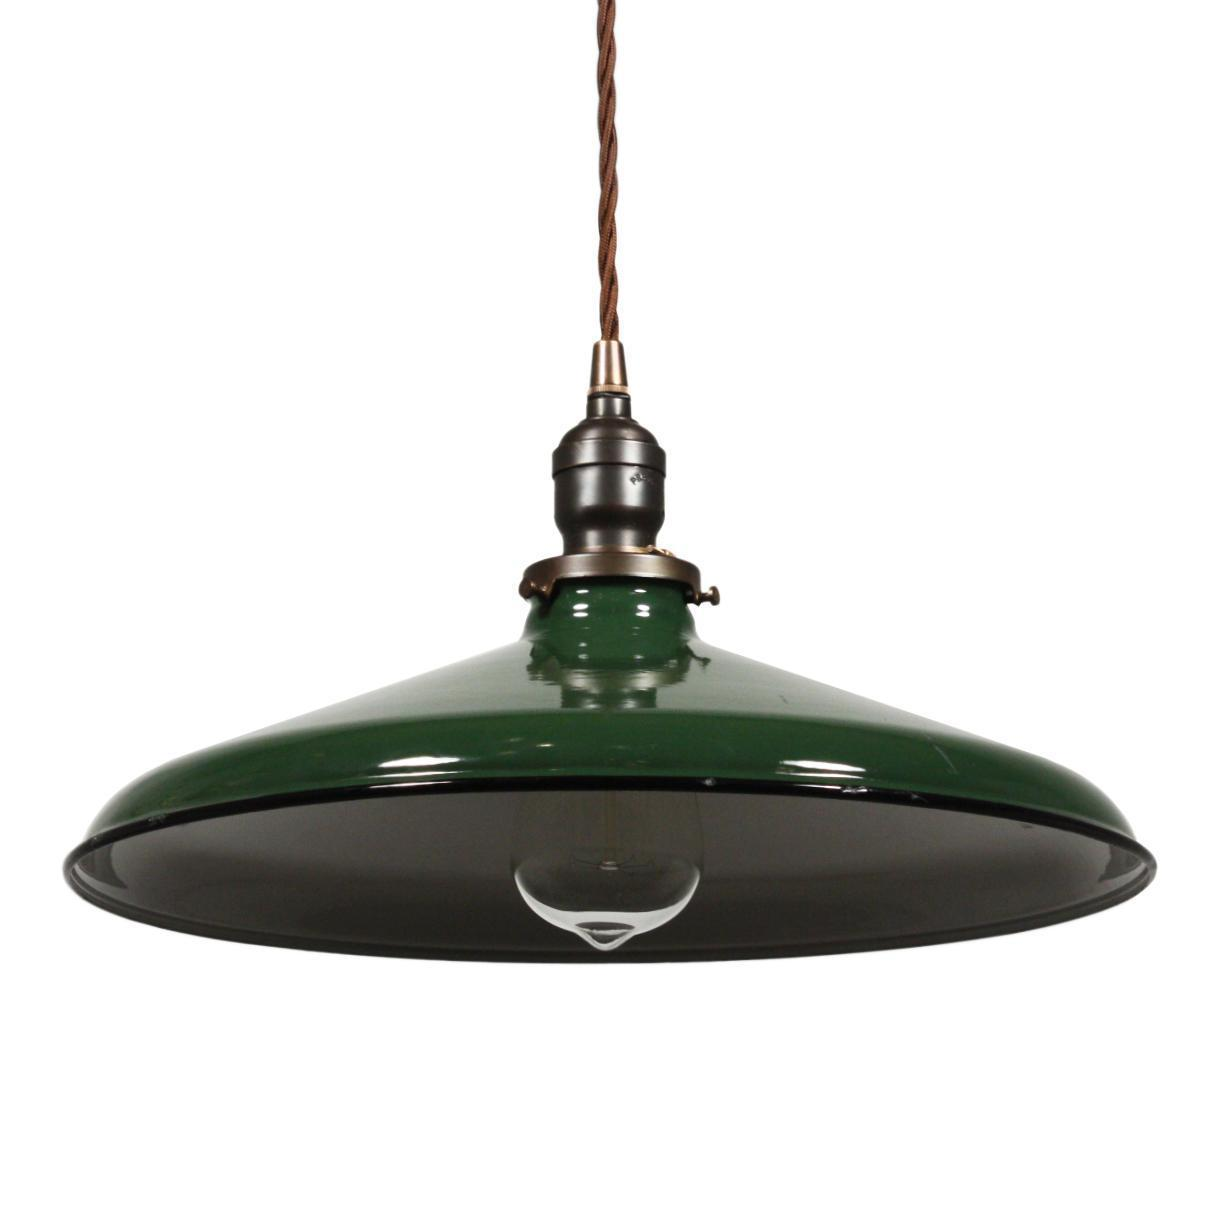 Found In Ithaca Vintage Green Enamel Shop Light: Antique Industrial Pendant Light, Green Enamel & Porcelain